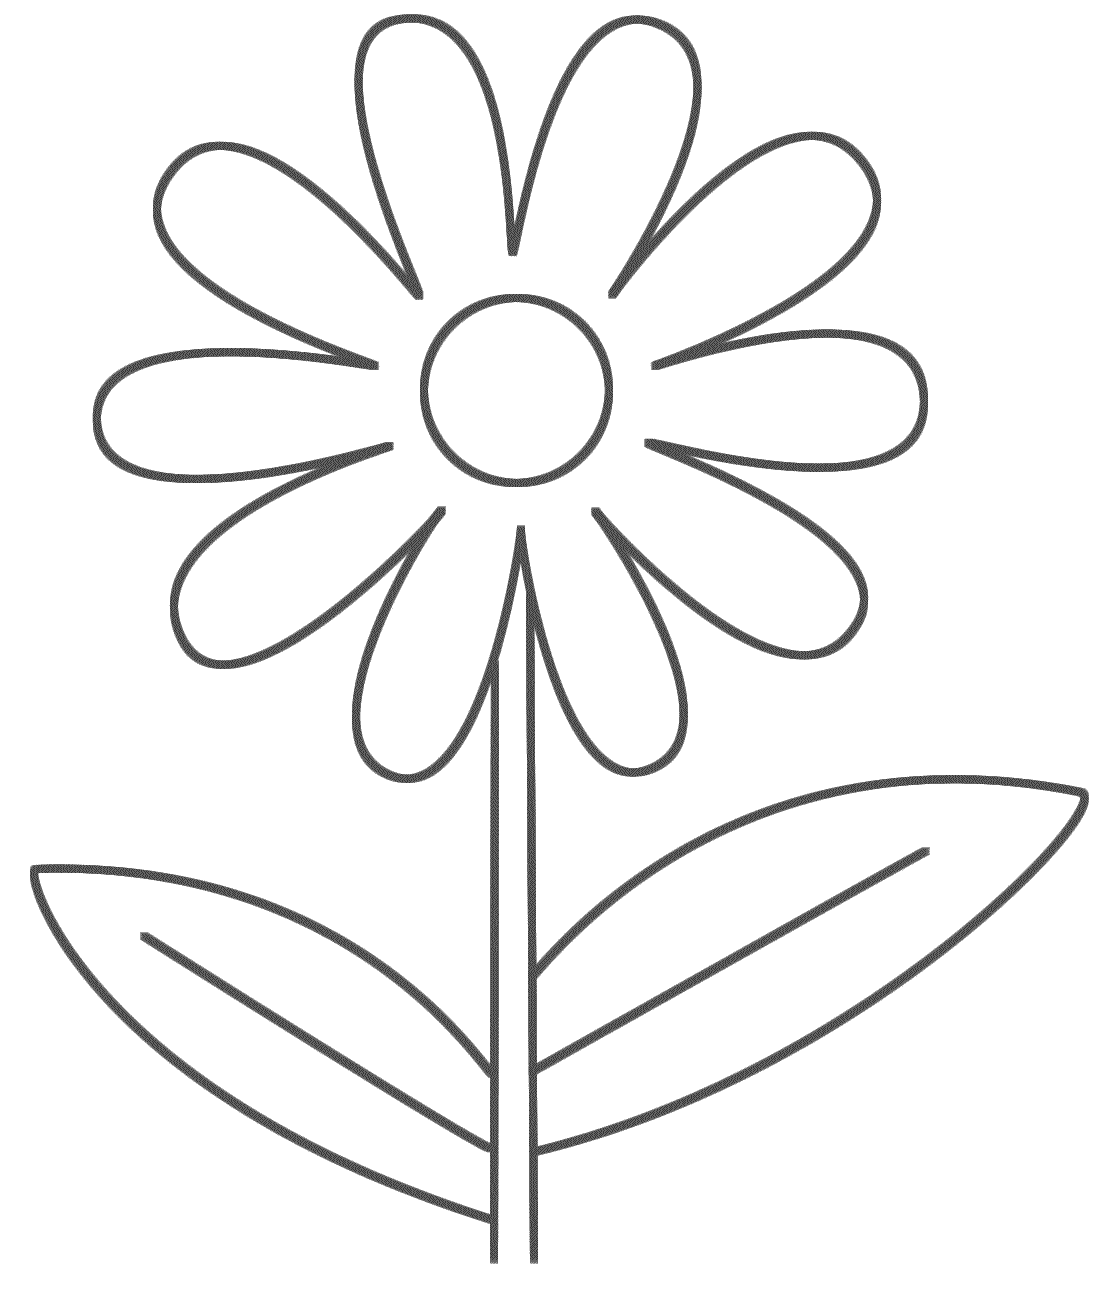 Easy Printable Flower Coloring Pages | Flower Coloring pages of ...